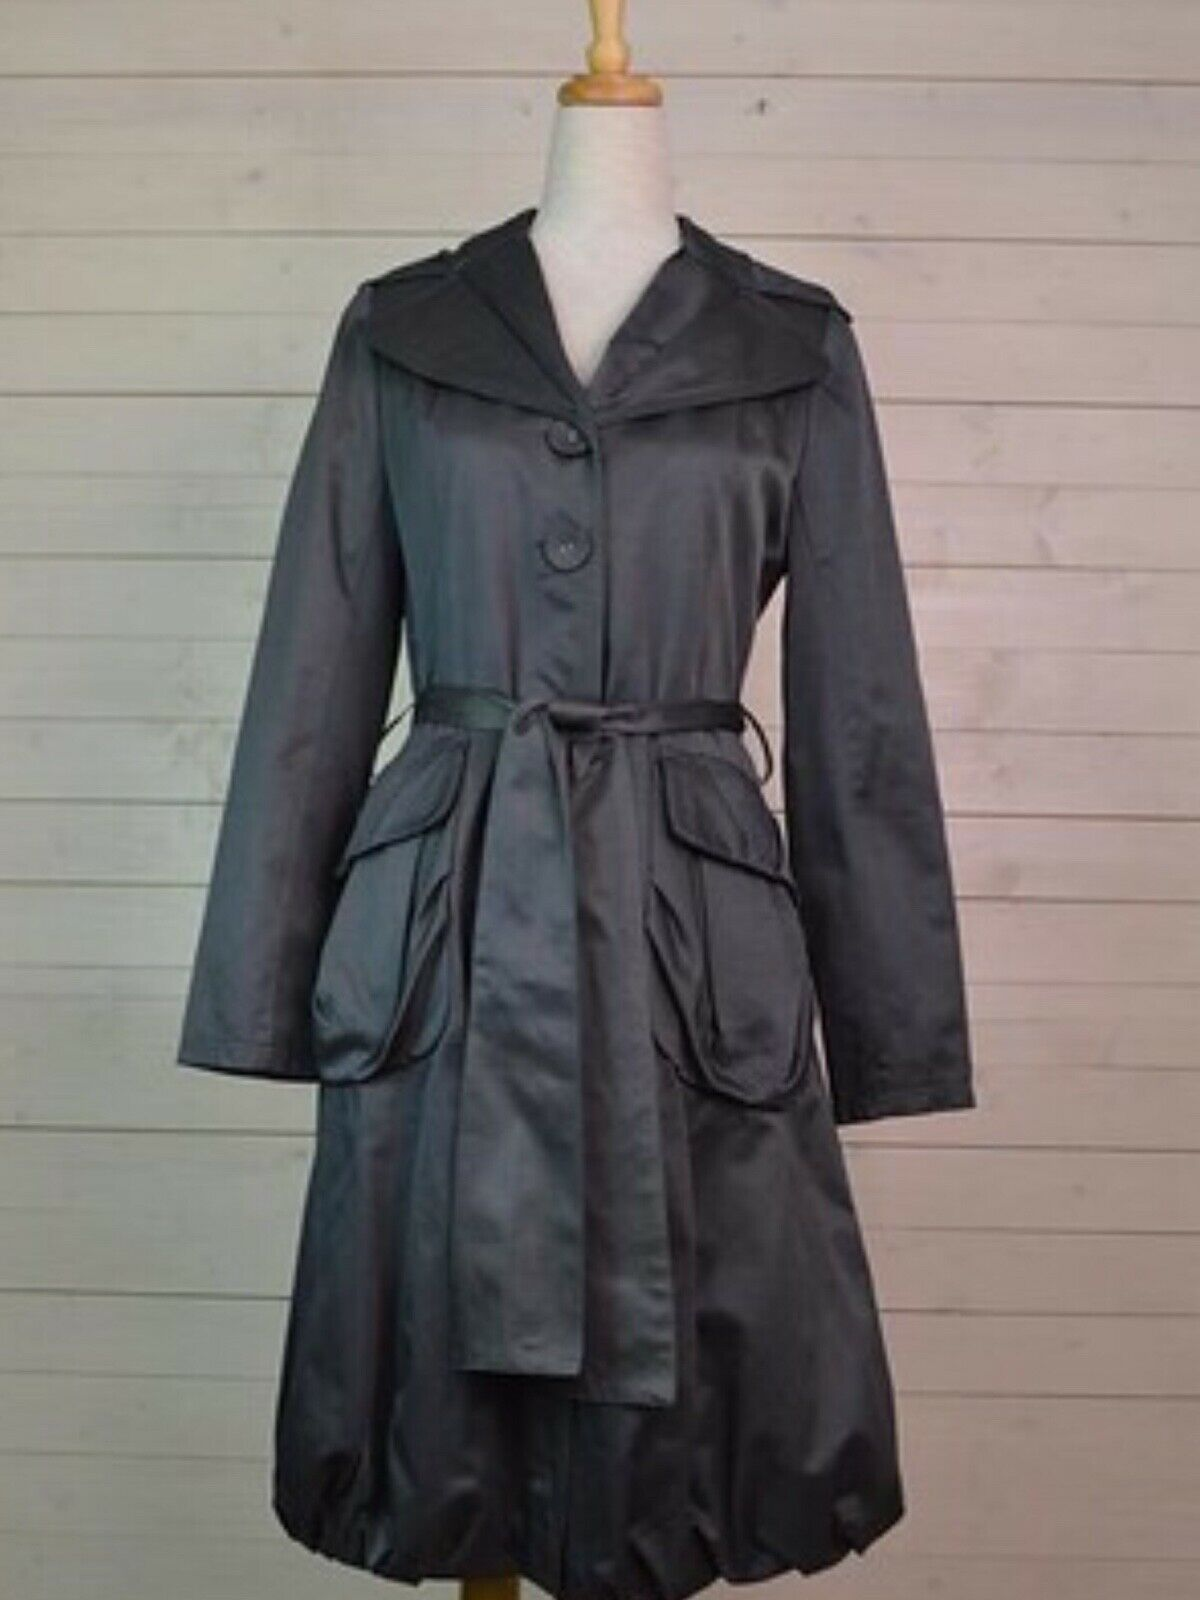 SALE * MAC STYLE COAT BY BOHEMIA OF SWEDEN. RRP SIZE S, M OR L